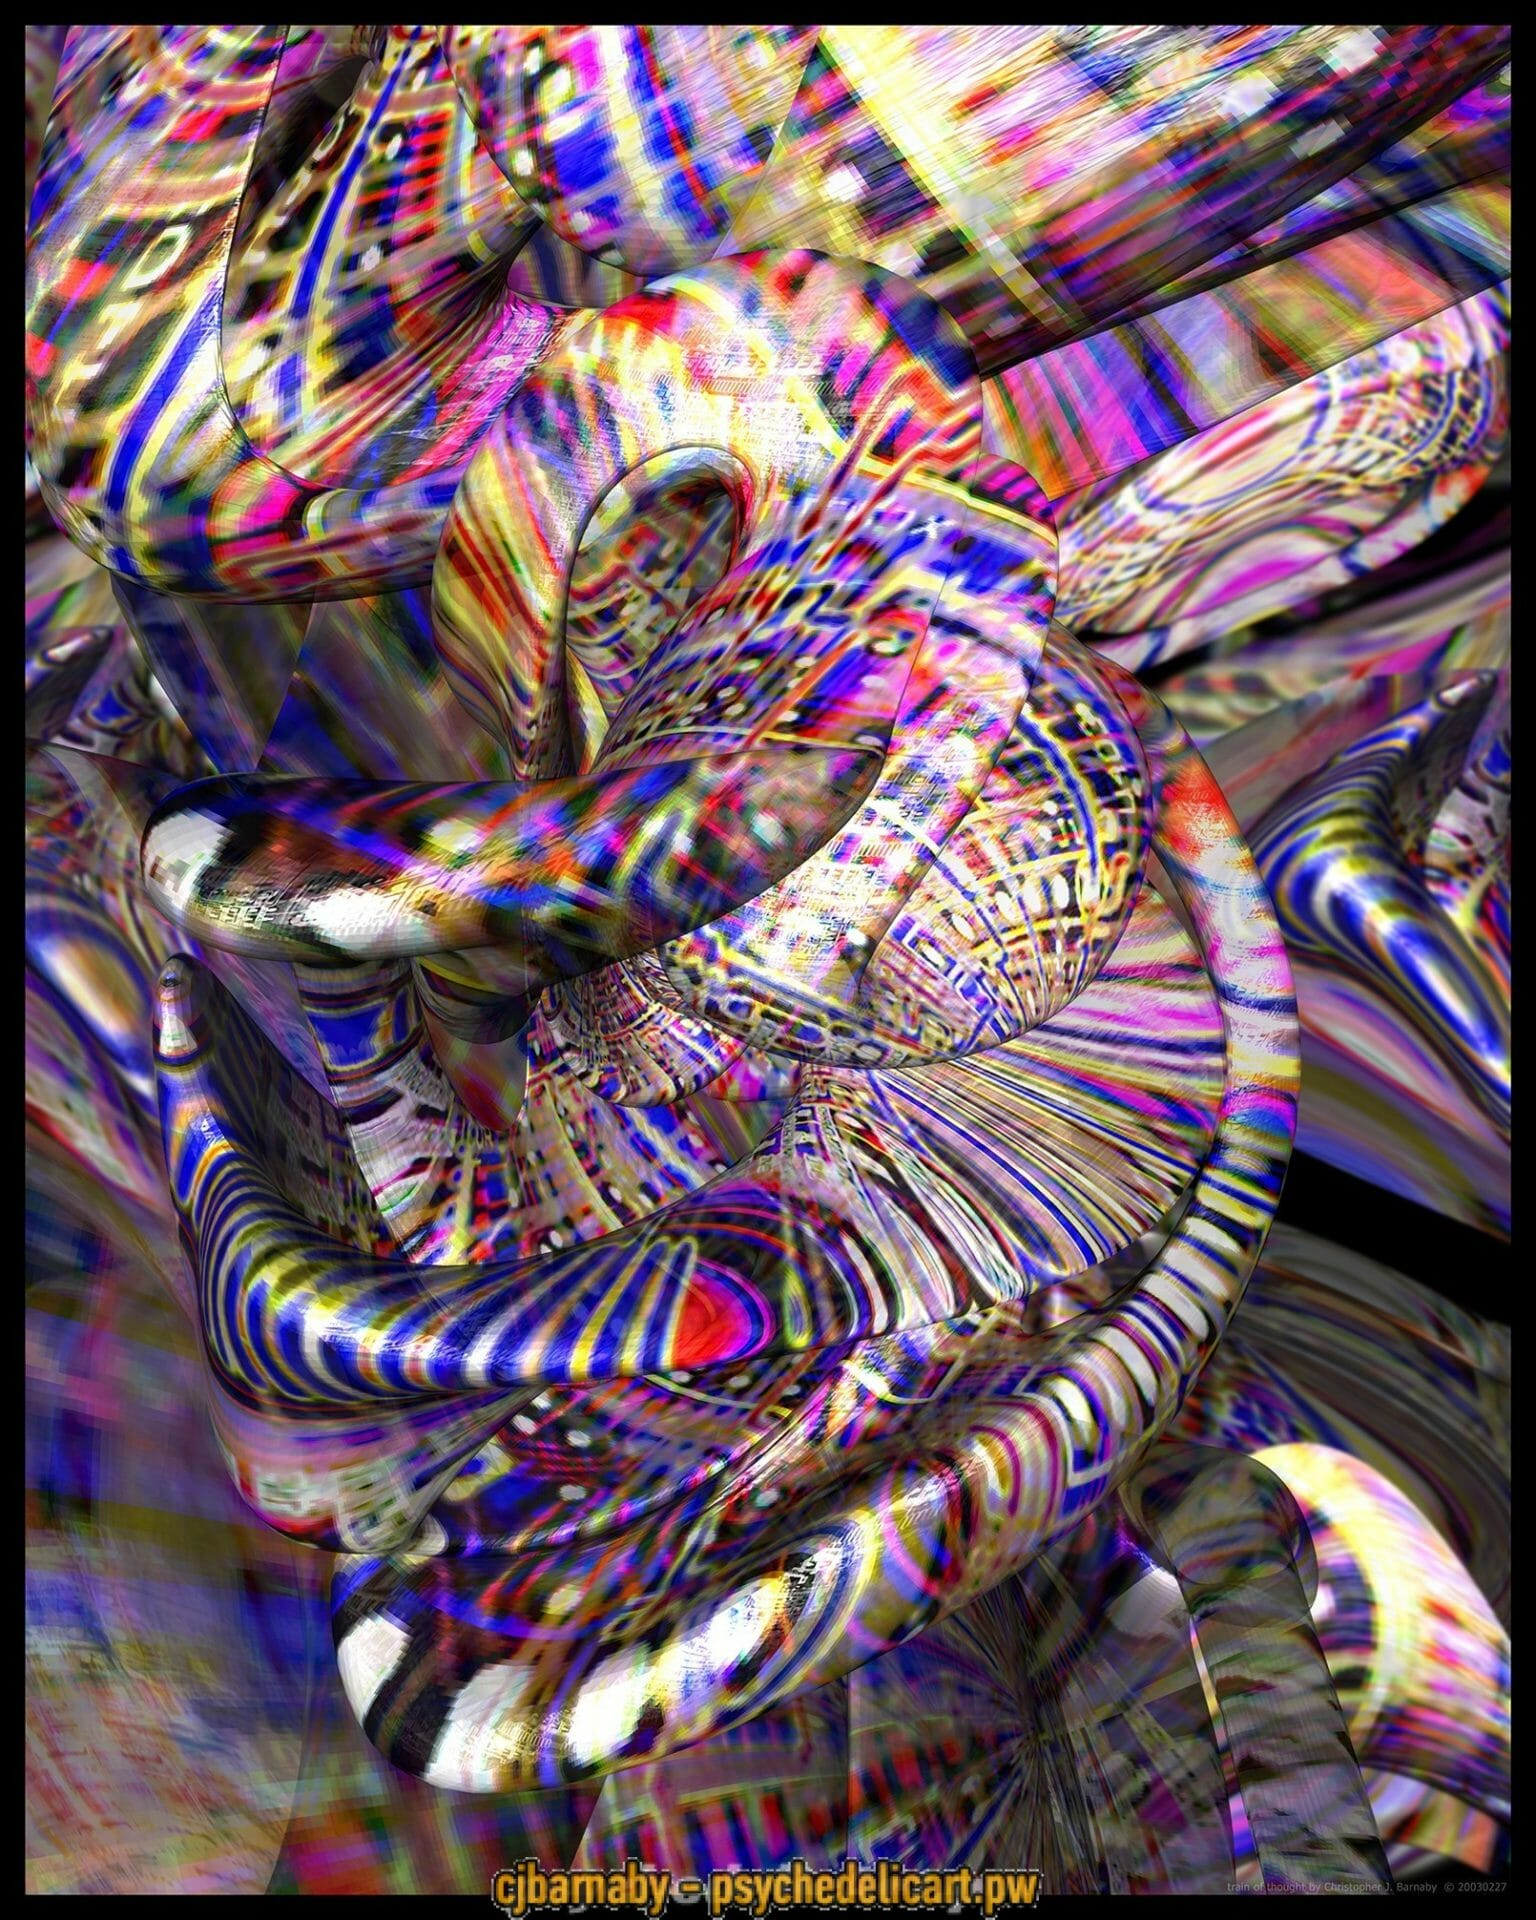 psychedelic art http://psychedelicart.pw/wp-content/uploads/Train-Of-Thought.jpg